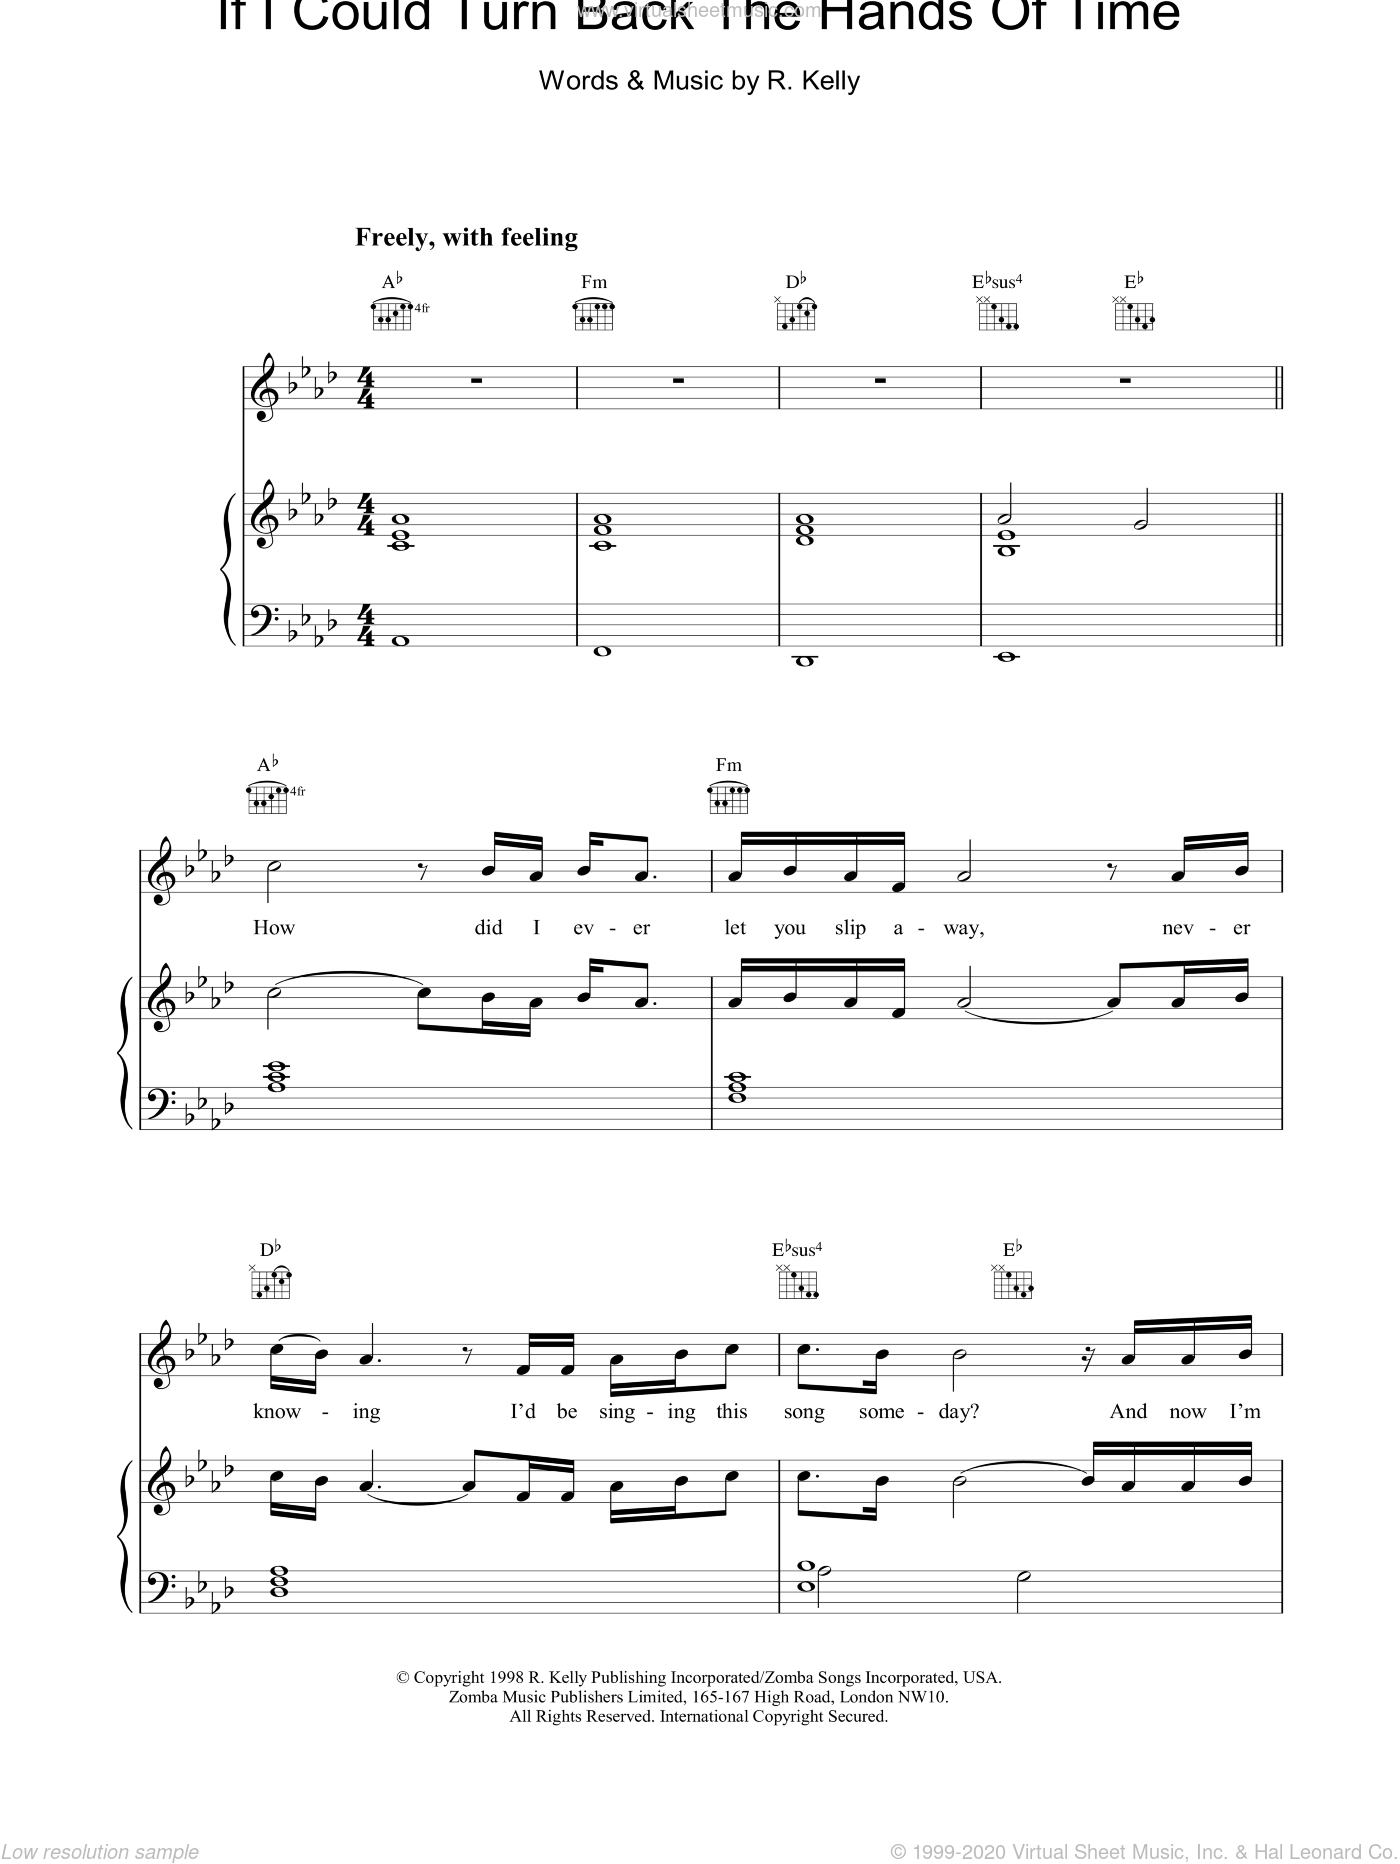 If I Could Turn Back The Hands Of Time sheet music for voice, piano or guitar by Robert Kelly, intermediate skill level